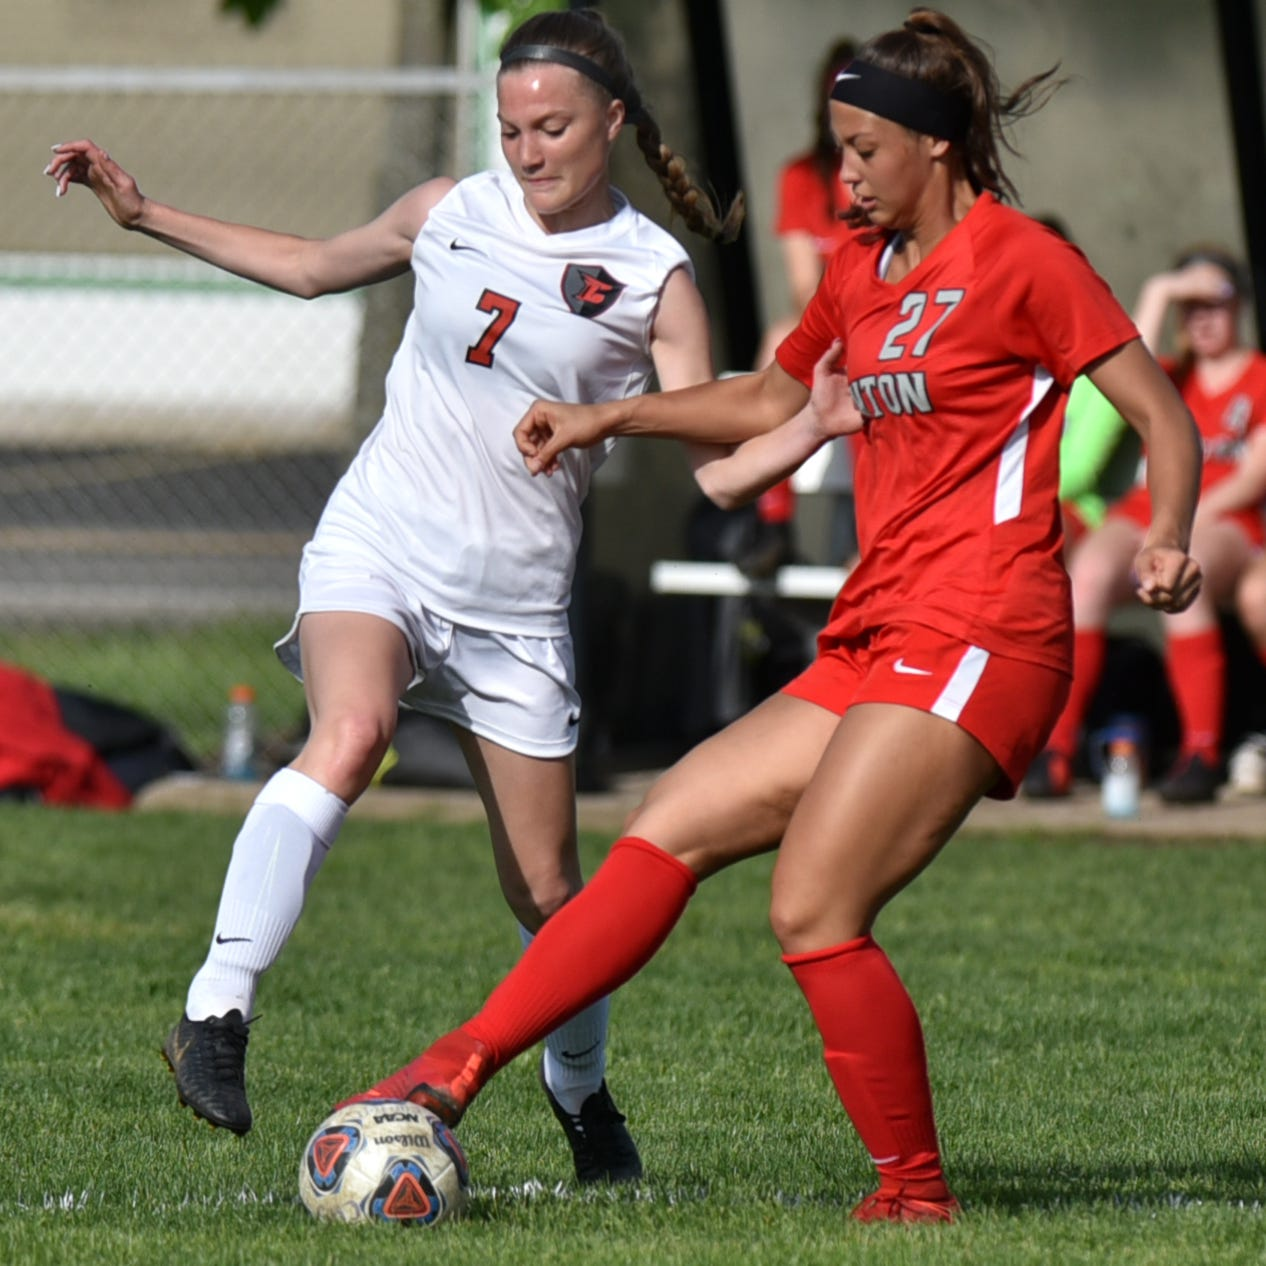 Nestico's one-of-a-kind hat-trick ignites Canton's 5-0 win over Churchill